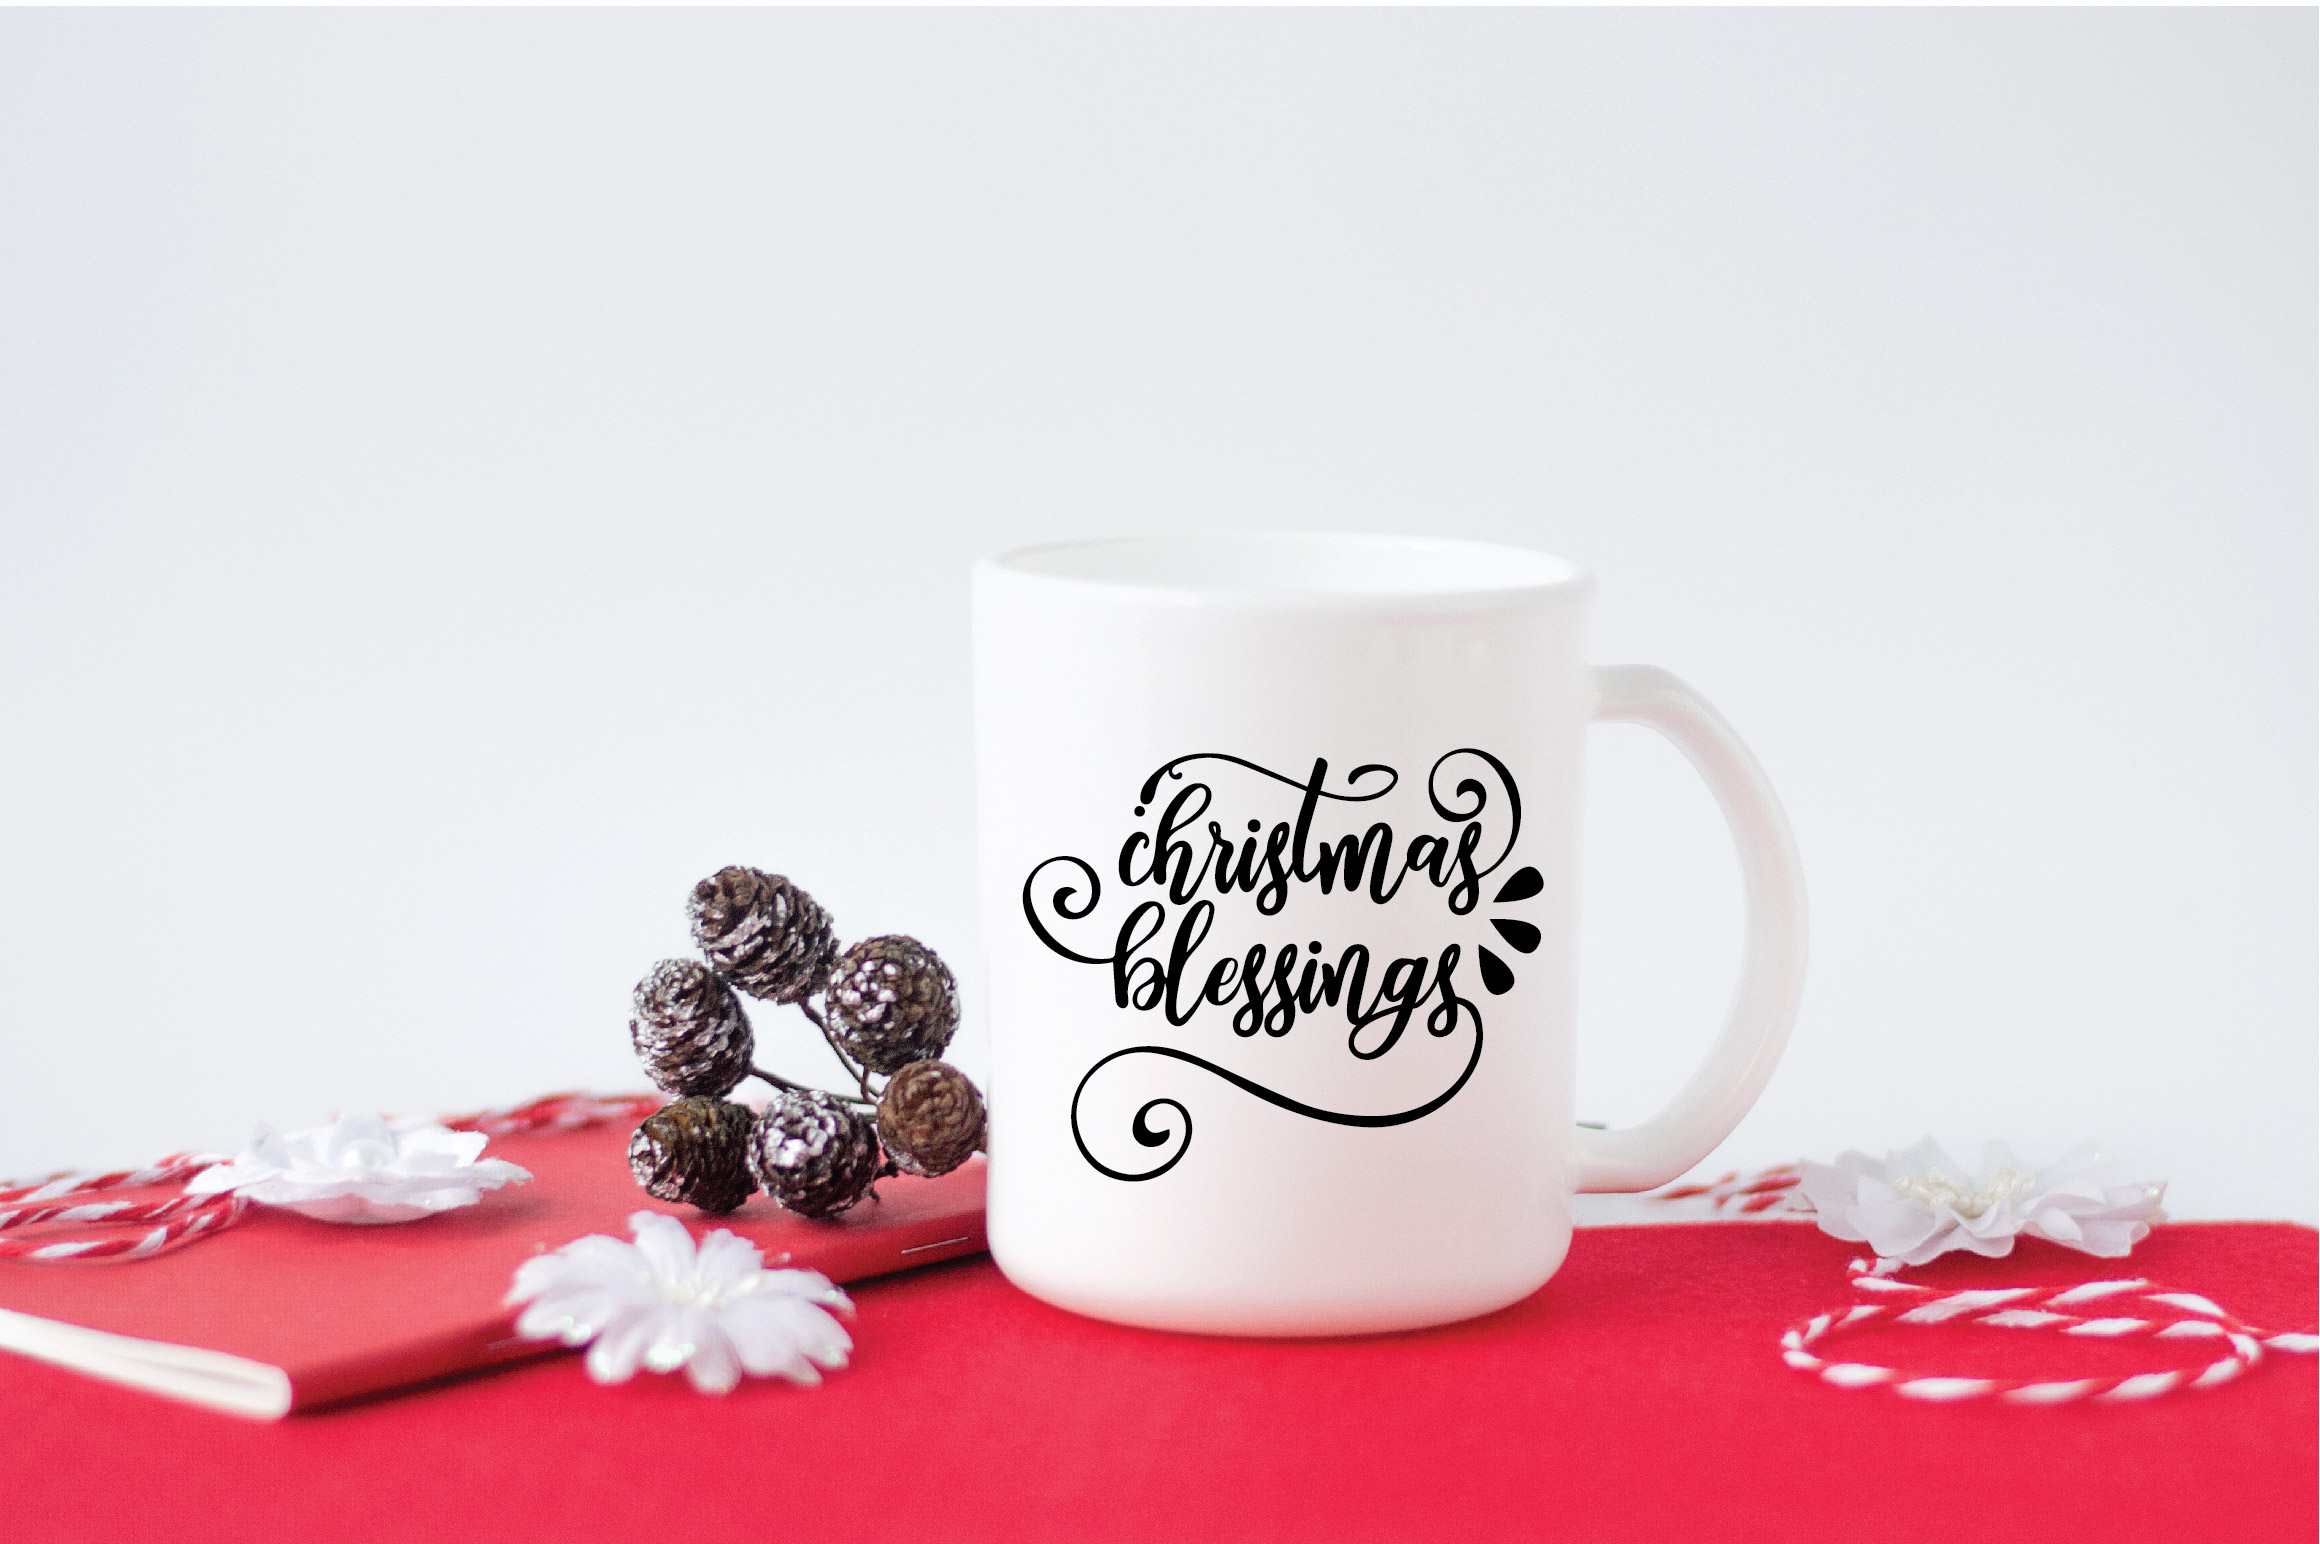 Christmas SVG Cut File - Christmas Blessings SVG DXF PNG EPS example image 5